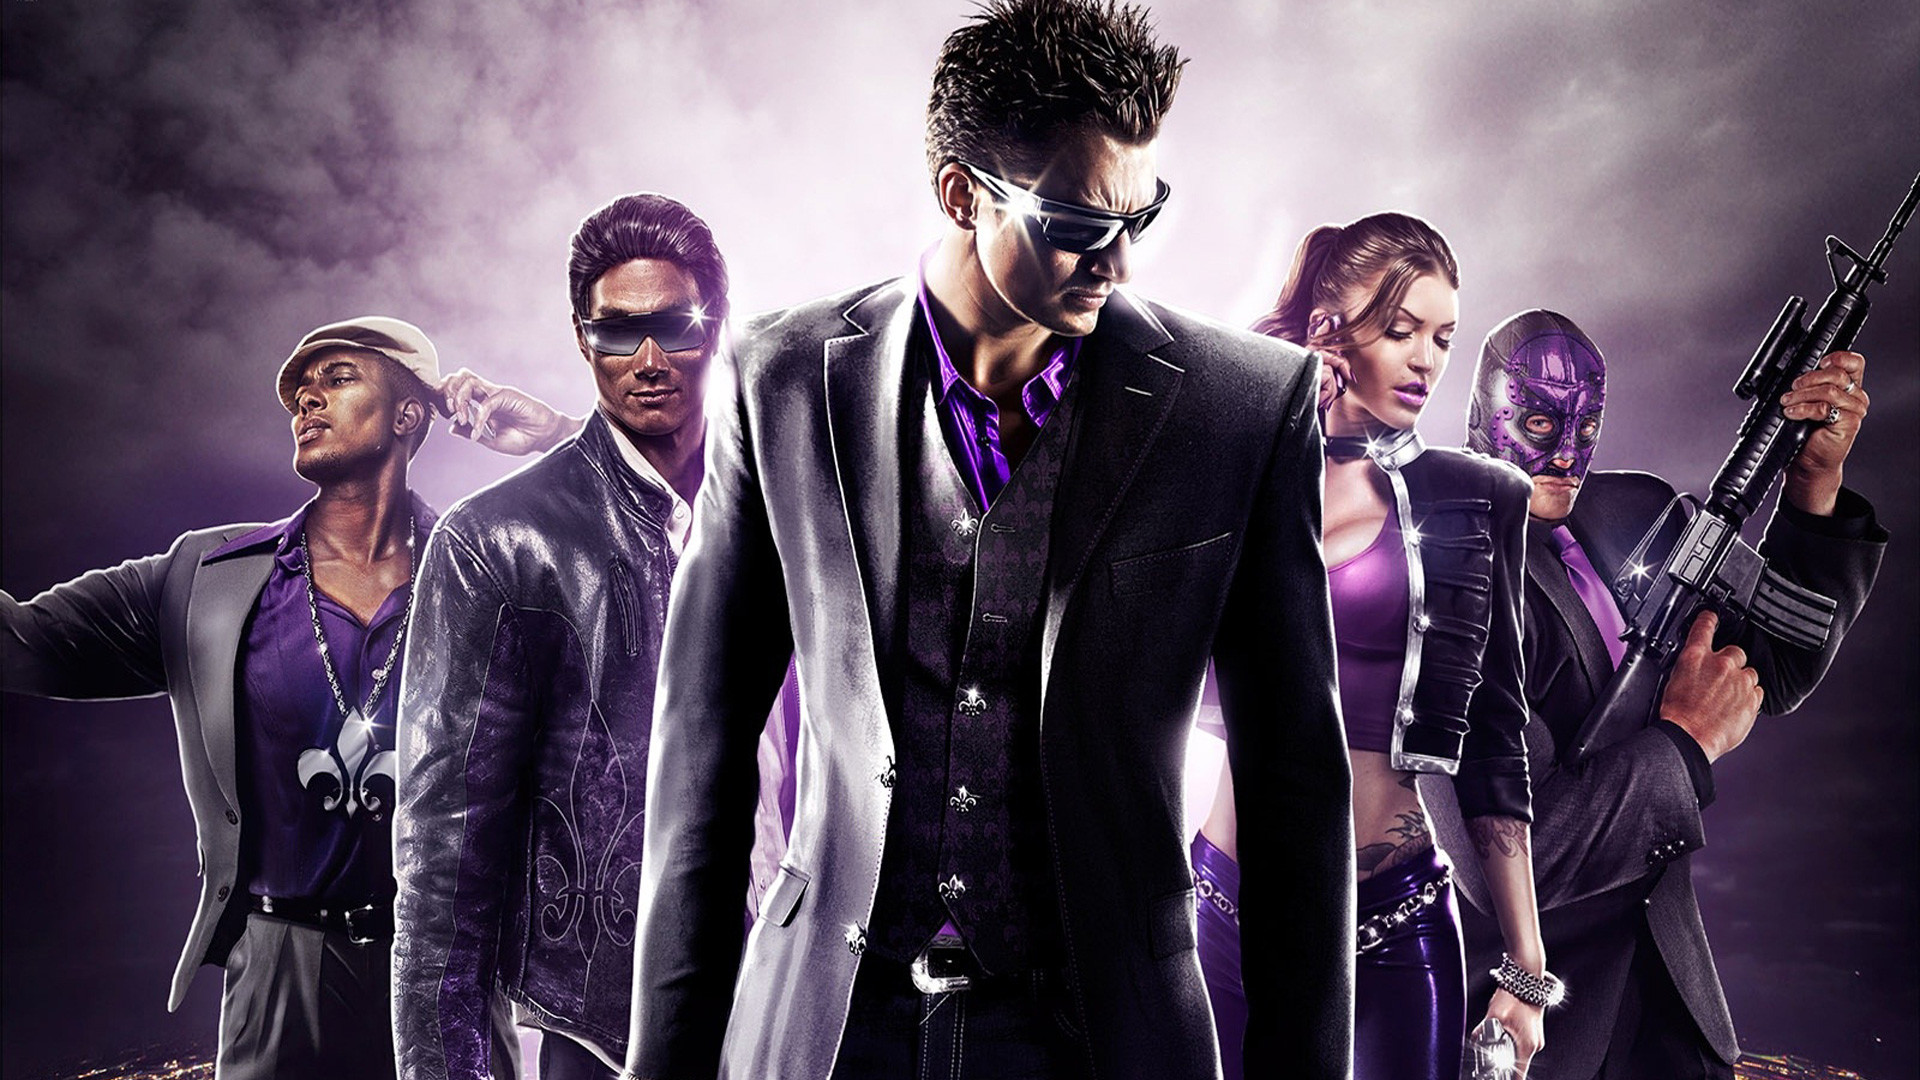 1920x1080 Saints-row-the-third-wallpaper-cast.jpg